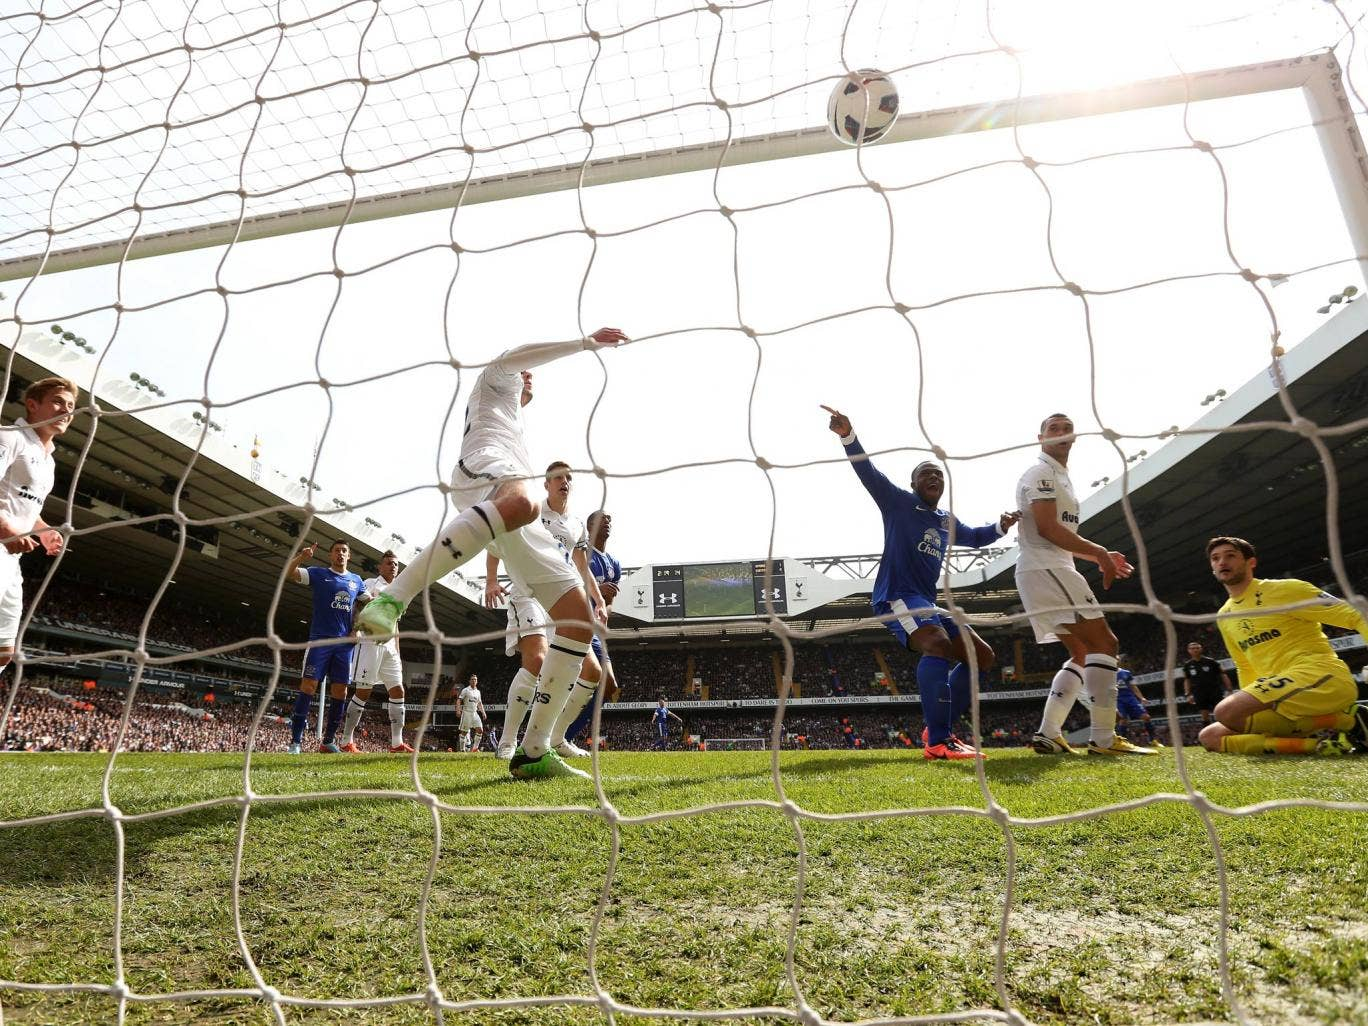 Victor Anichebe of Everton celebrates as Phil Jagielka of Everton (not pictured) scores their first goal against Tottenham